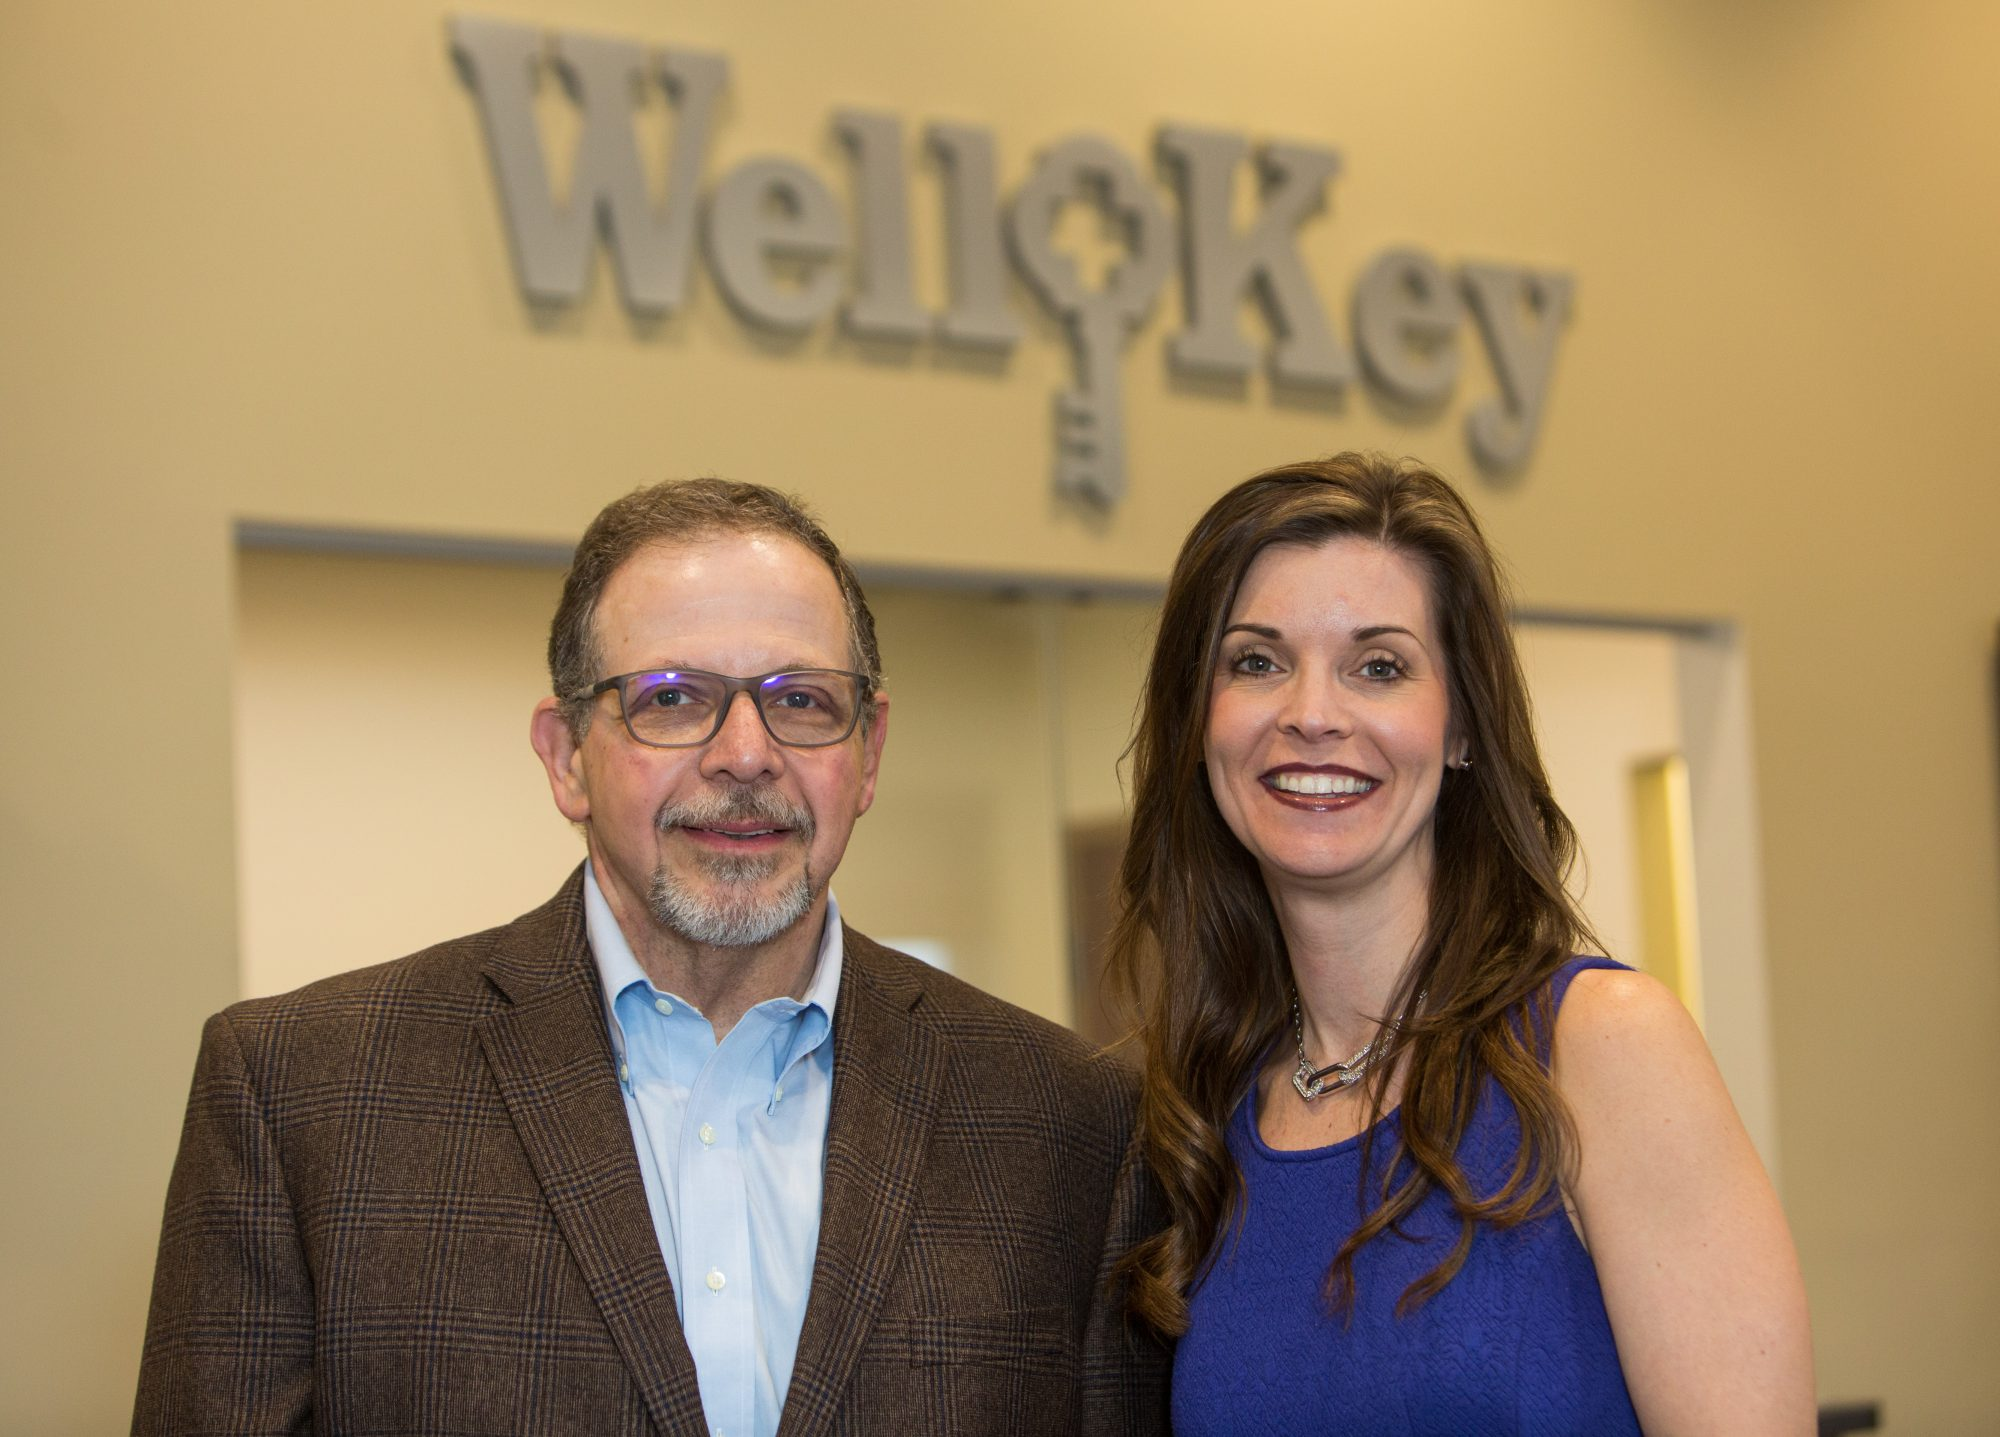 Dr. Huskey and Dr. Rothwell of Well-Key Urgent Care